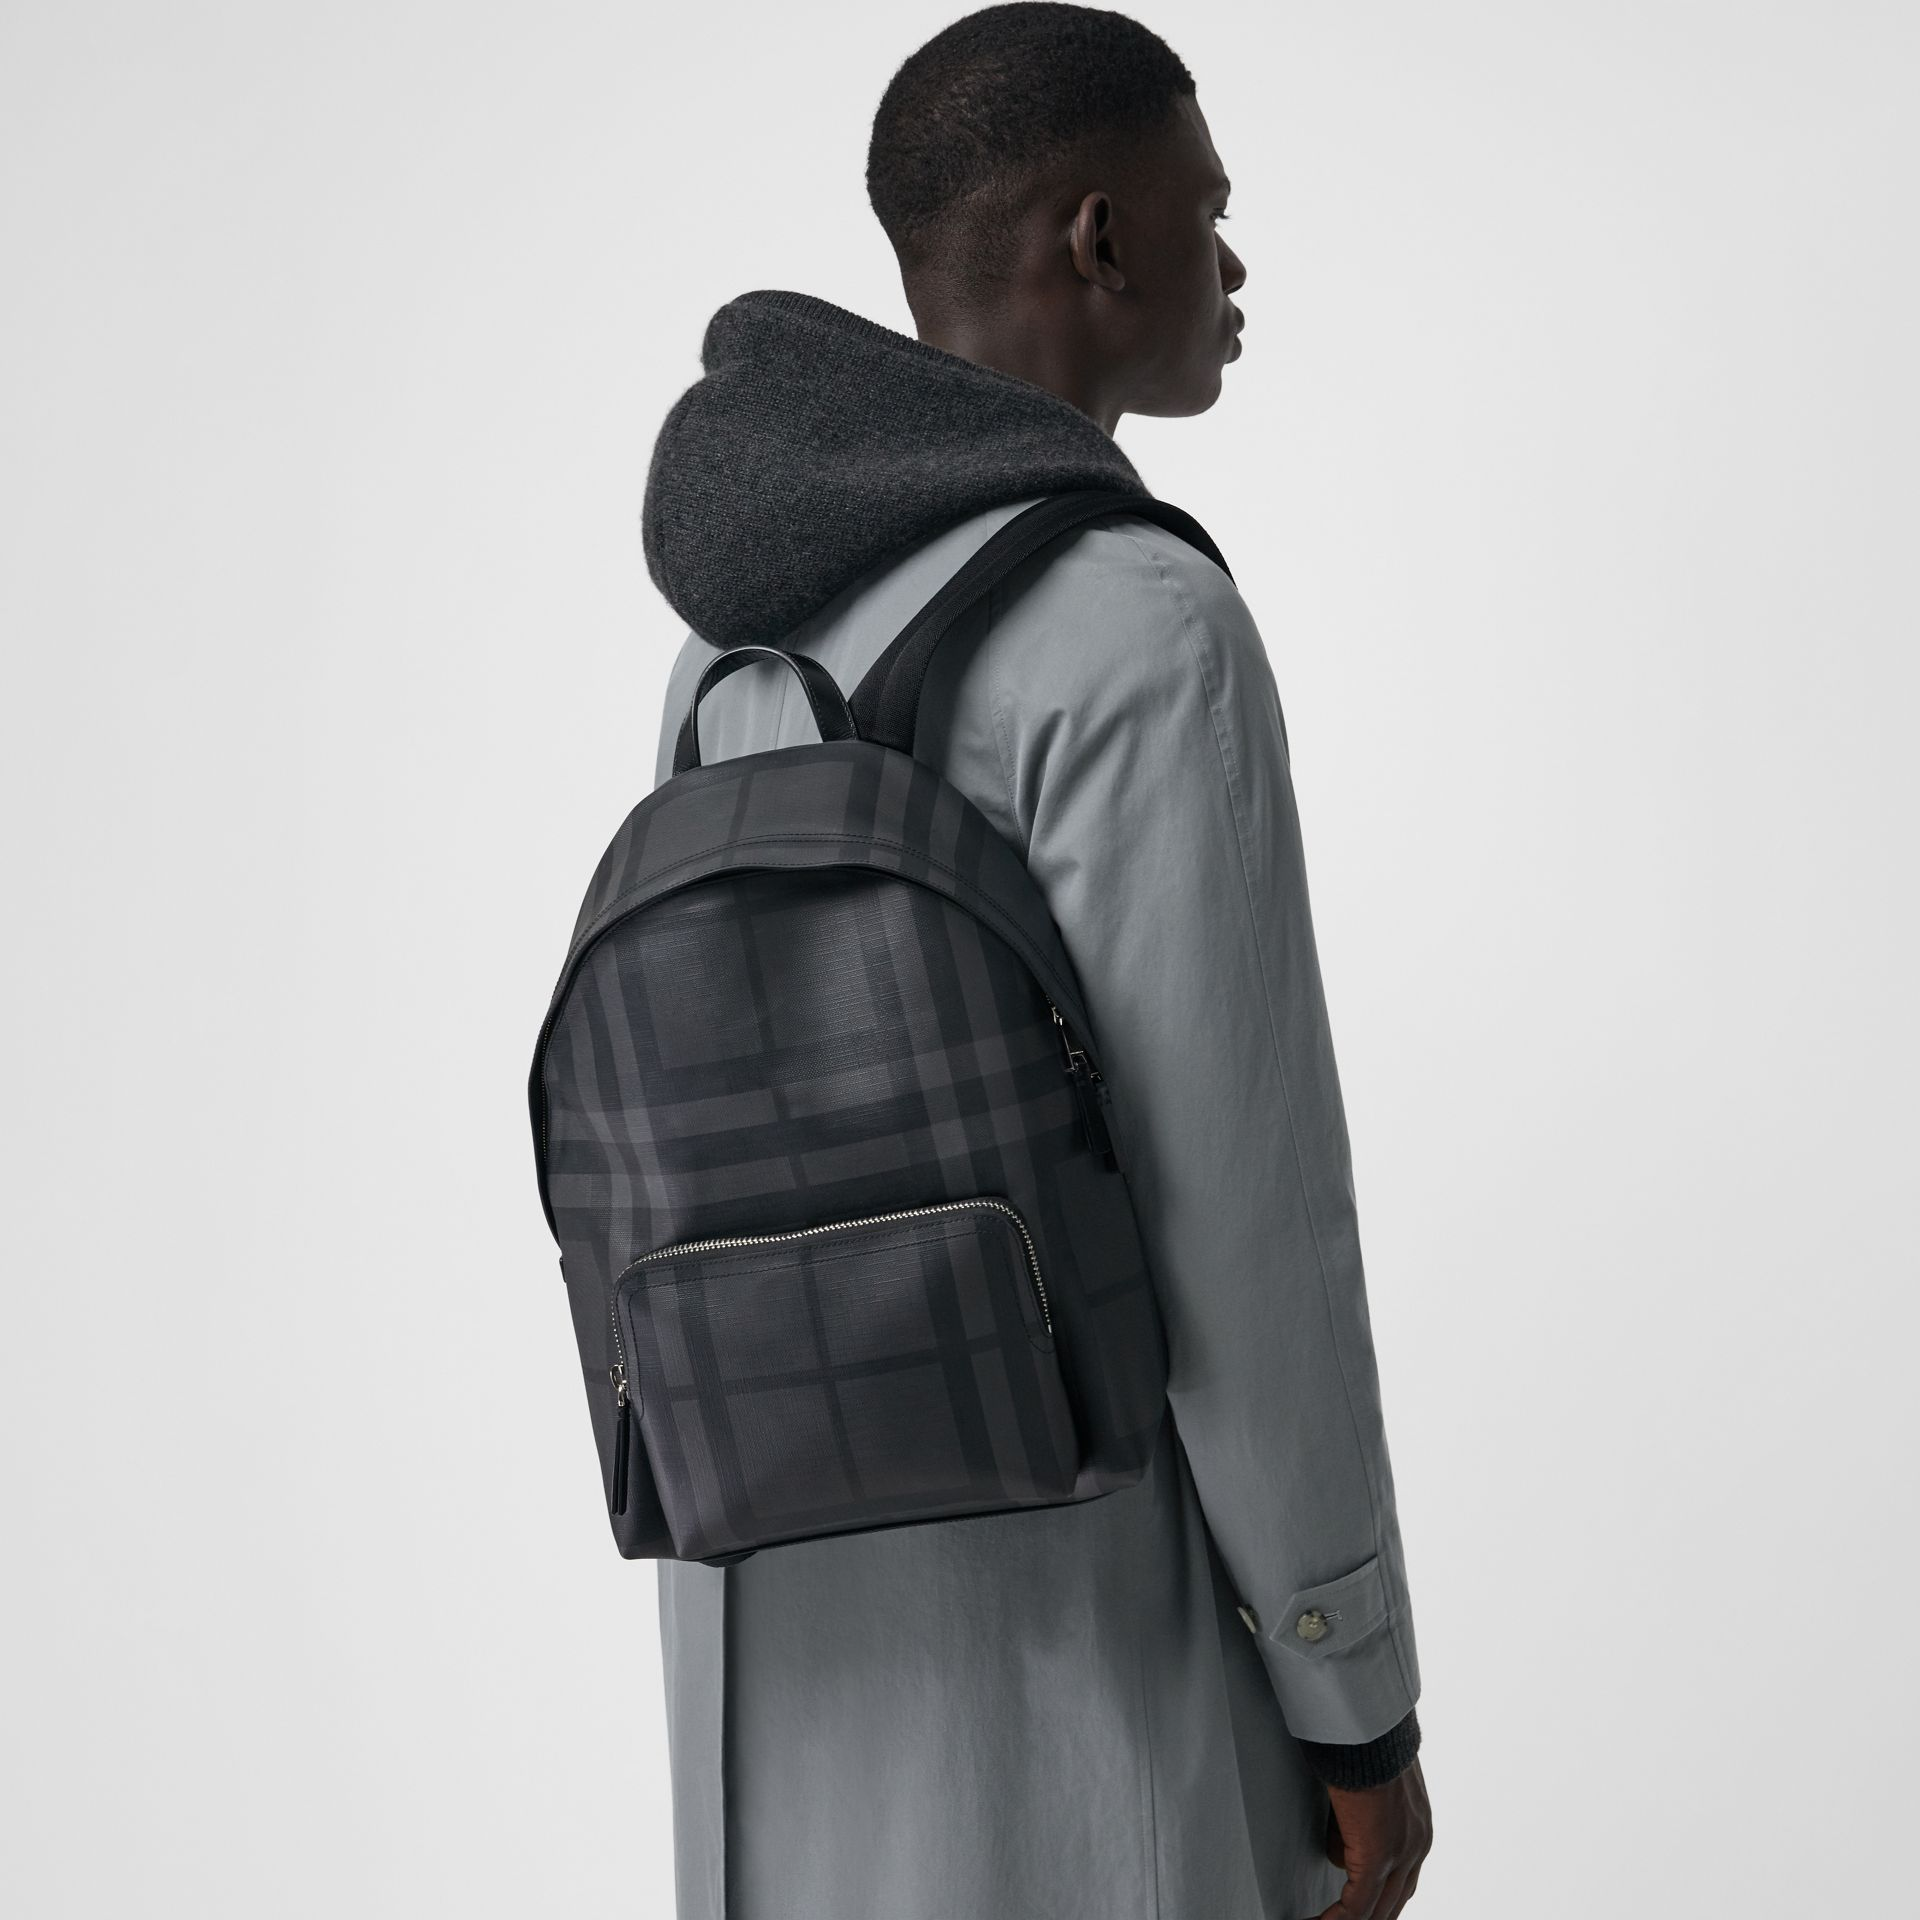 Sac à dos à motif London check avec éléments en cuir (Anthracite/noir) - Homme | Burberry Canada - photo de la galerie 2